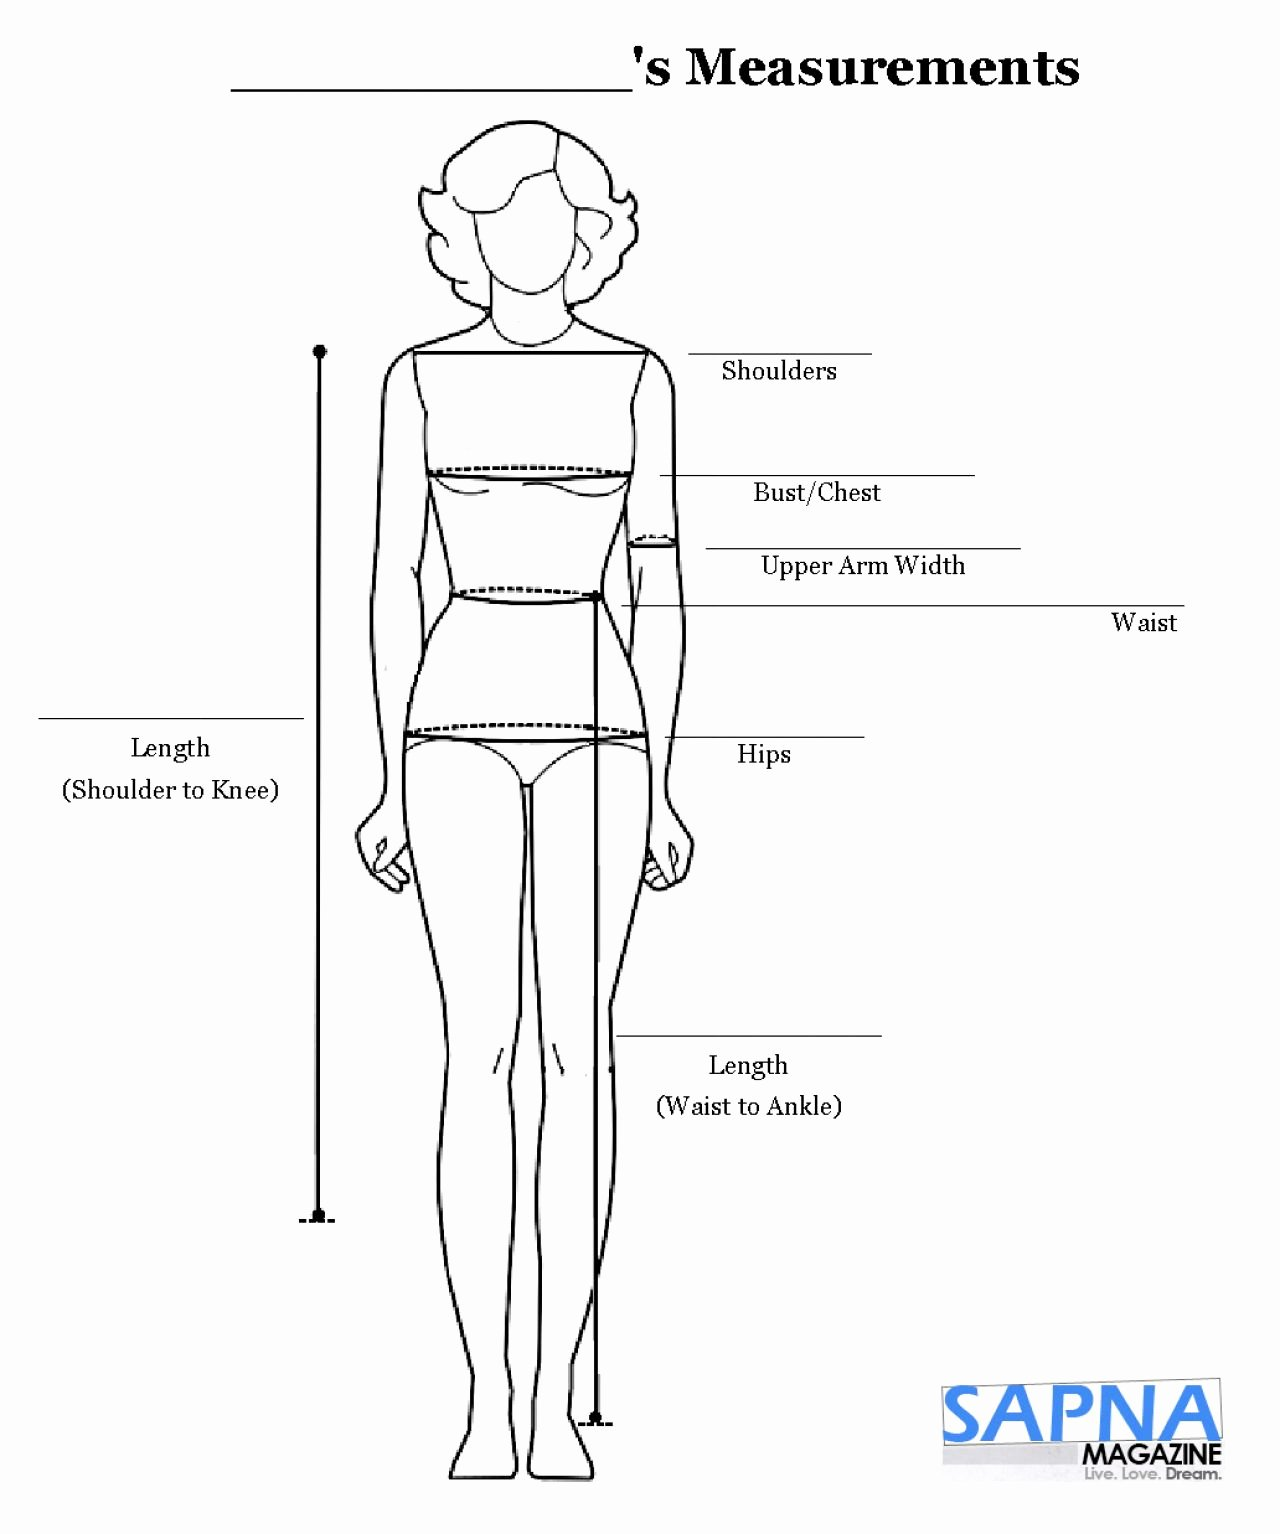 Clothing Size Chart Template Best Of Chart for Body Measurements Weight Loss Measurement